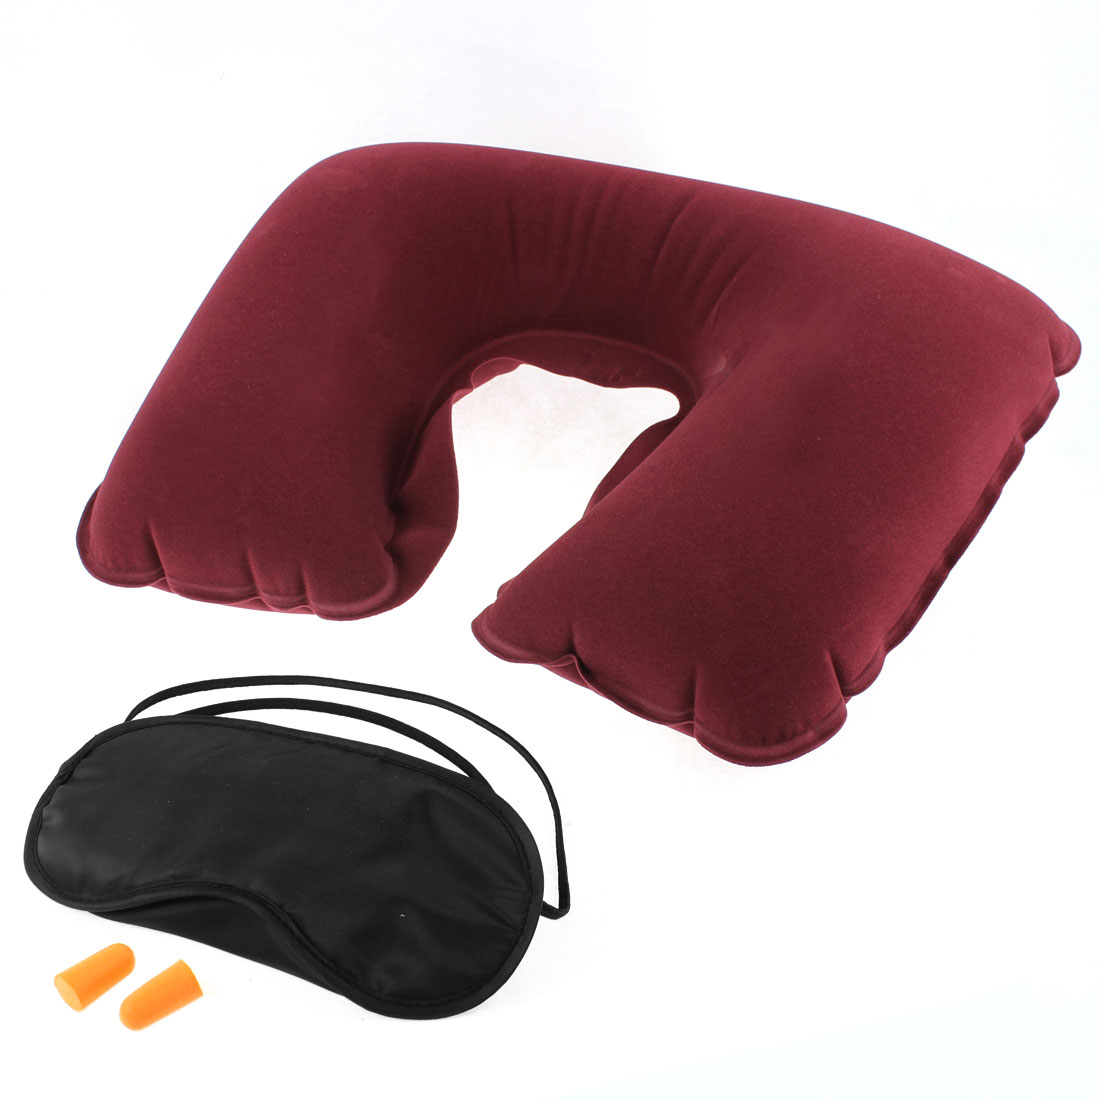 Travel Sleeping Relaxing Head Neck Cushion Pillow Eye Mask Earphone 3 in 1